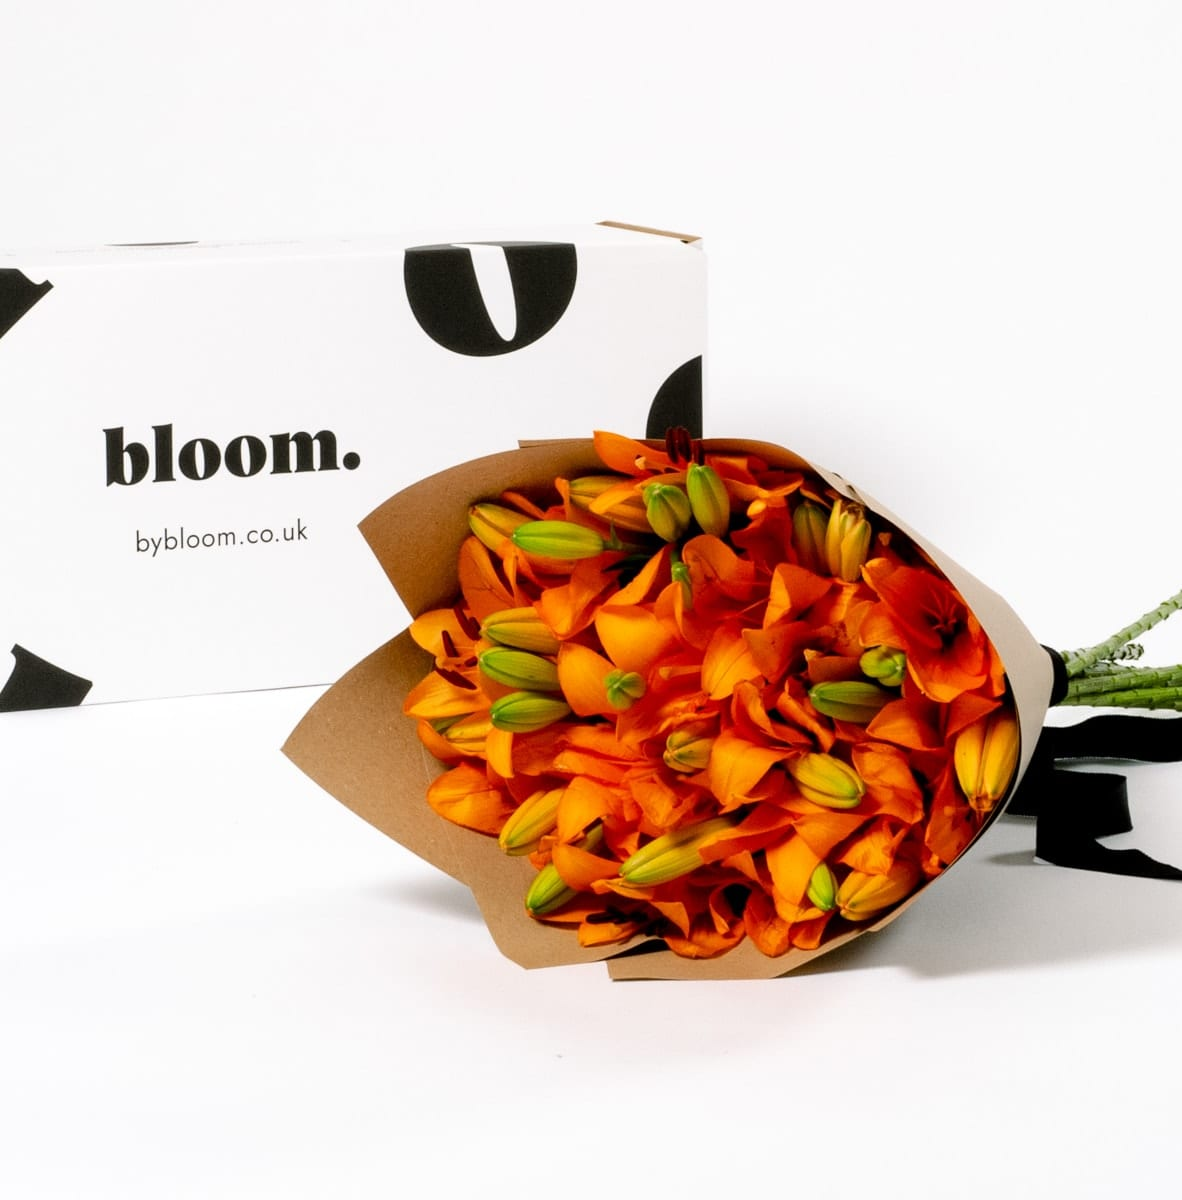 Bloom Flower Delivery | Marmalade Orange Lily